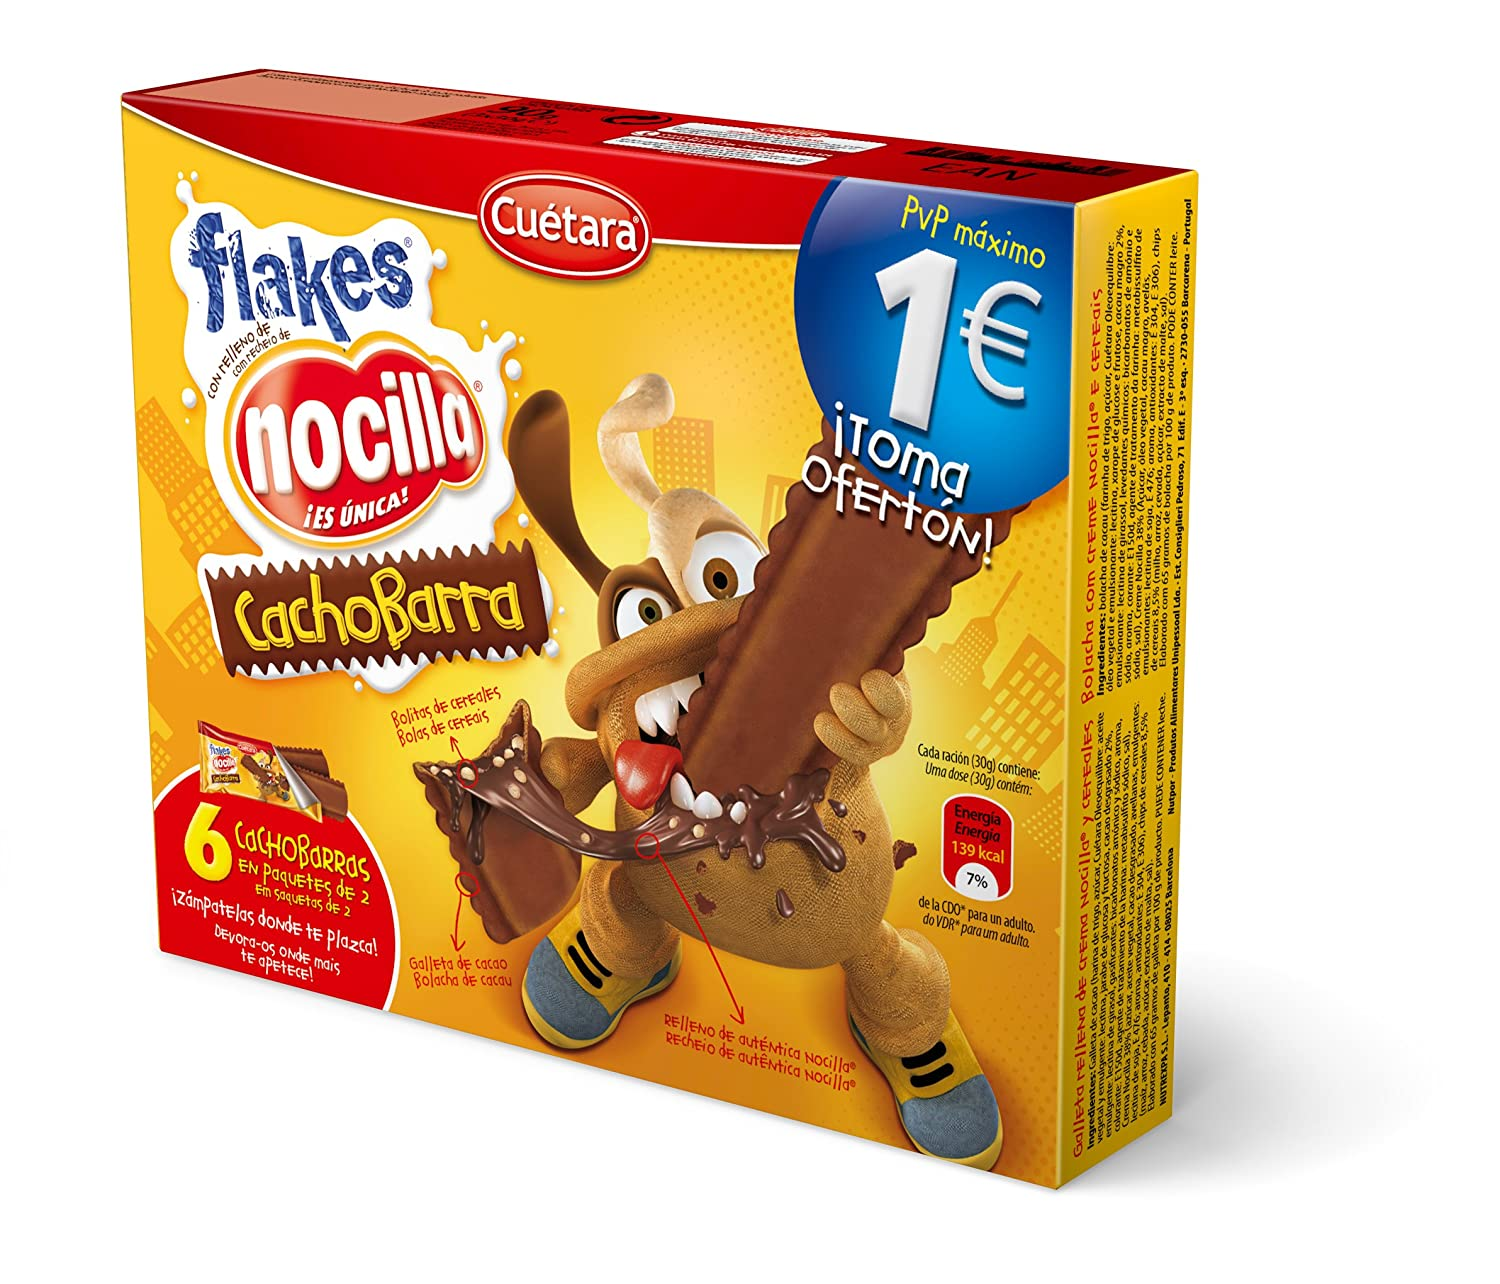 Cuetara ChocoBarra Galleta Rellena de Crema Nocilla y Cereales - Pack de 3 x 30 g - Total: 90 g: Amazon.es: Amazon Pantry